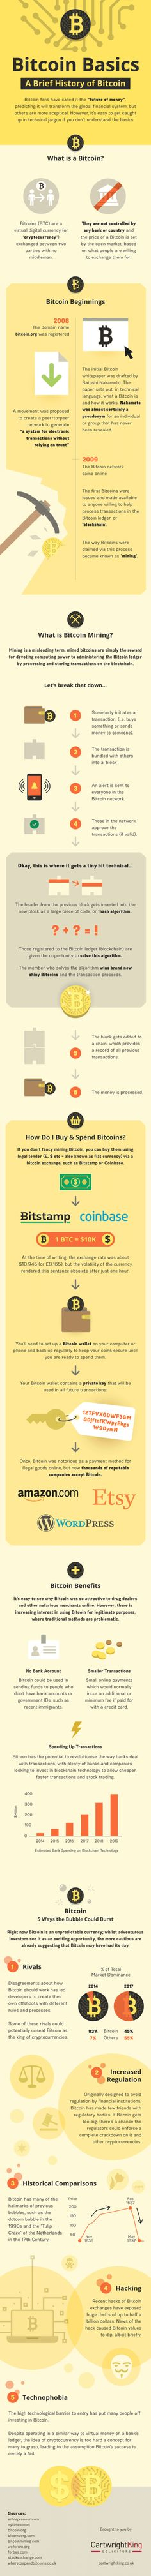 Bitcoin Explained: Get to Know the Basics - #infographic / Digital Information World